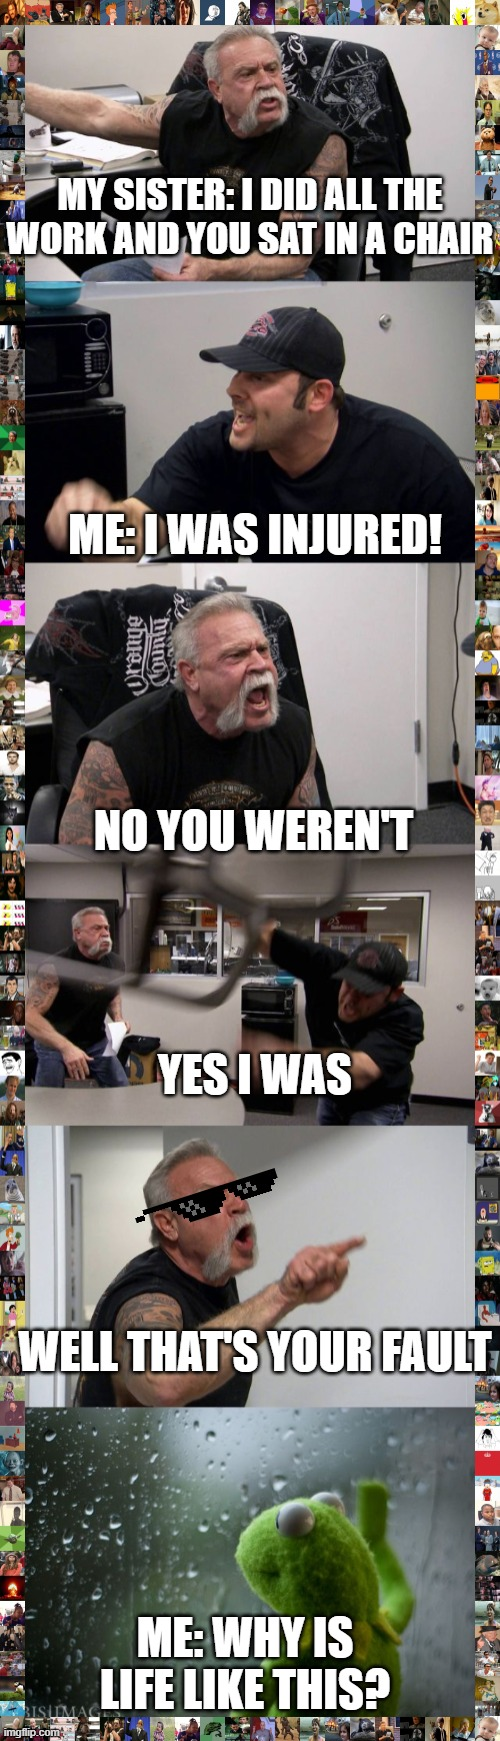 my sister and I |  MY SISTER: I DID ALL THE WORK AND YOU SAT IN A CHAIR; ME: I WAS INJURED! NO YOU WEREN'T; YES I WAS; WELL THAT'S YOUR FAULT; ME: WHY IS LIFE LIKE THIS? | image tagged in kermit window,memes,american chopper argument | made w/ Imgflip meme maker